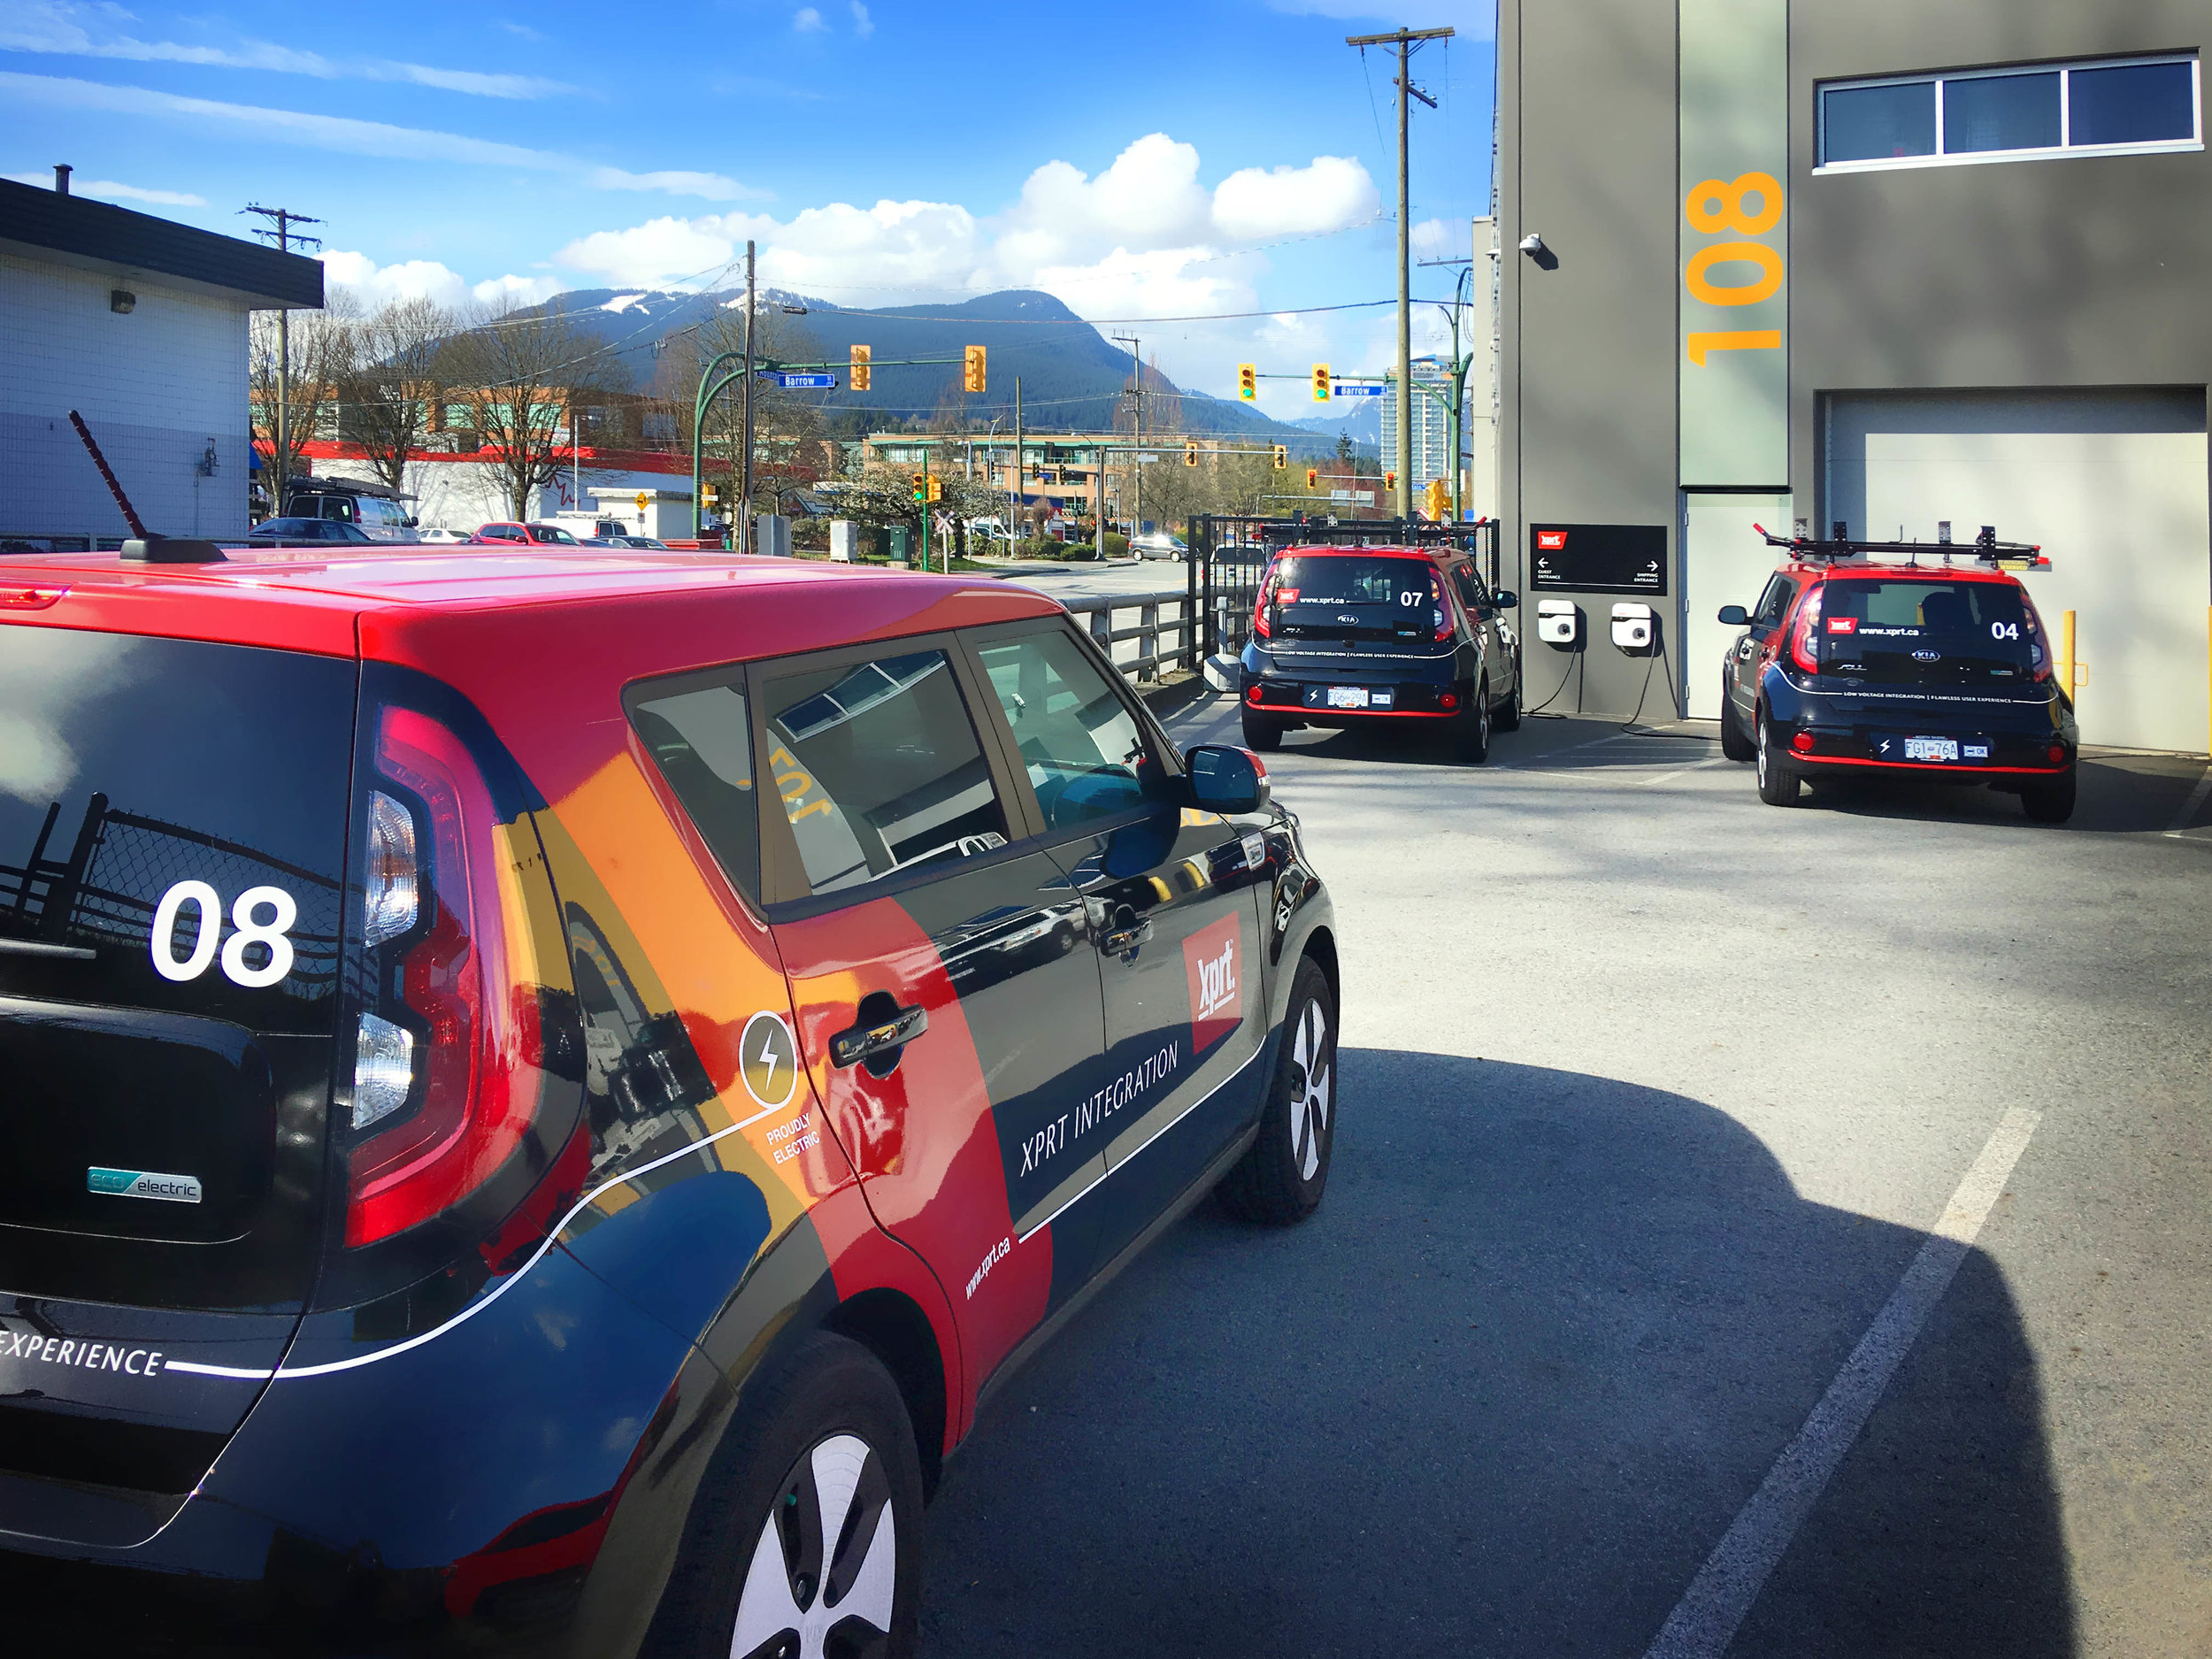 In 2016 Xprt began building a fleet of Kia Soul electric vehicles, because we identified an opportunity to invest in reduced fuel usage, and a lower cost of ownership over the life of the vehicles we chose to put on BC's roads.